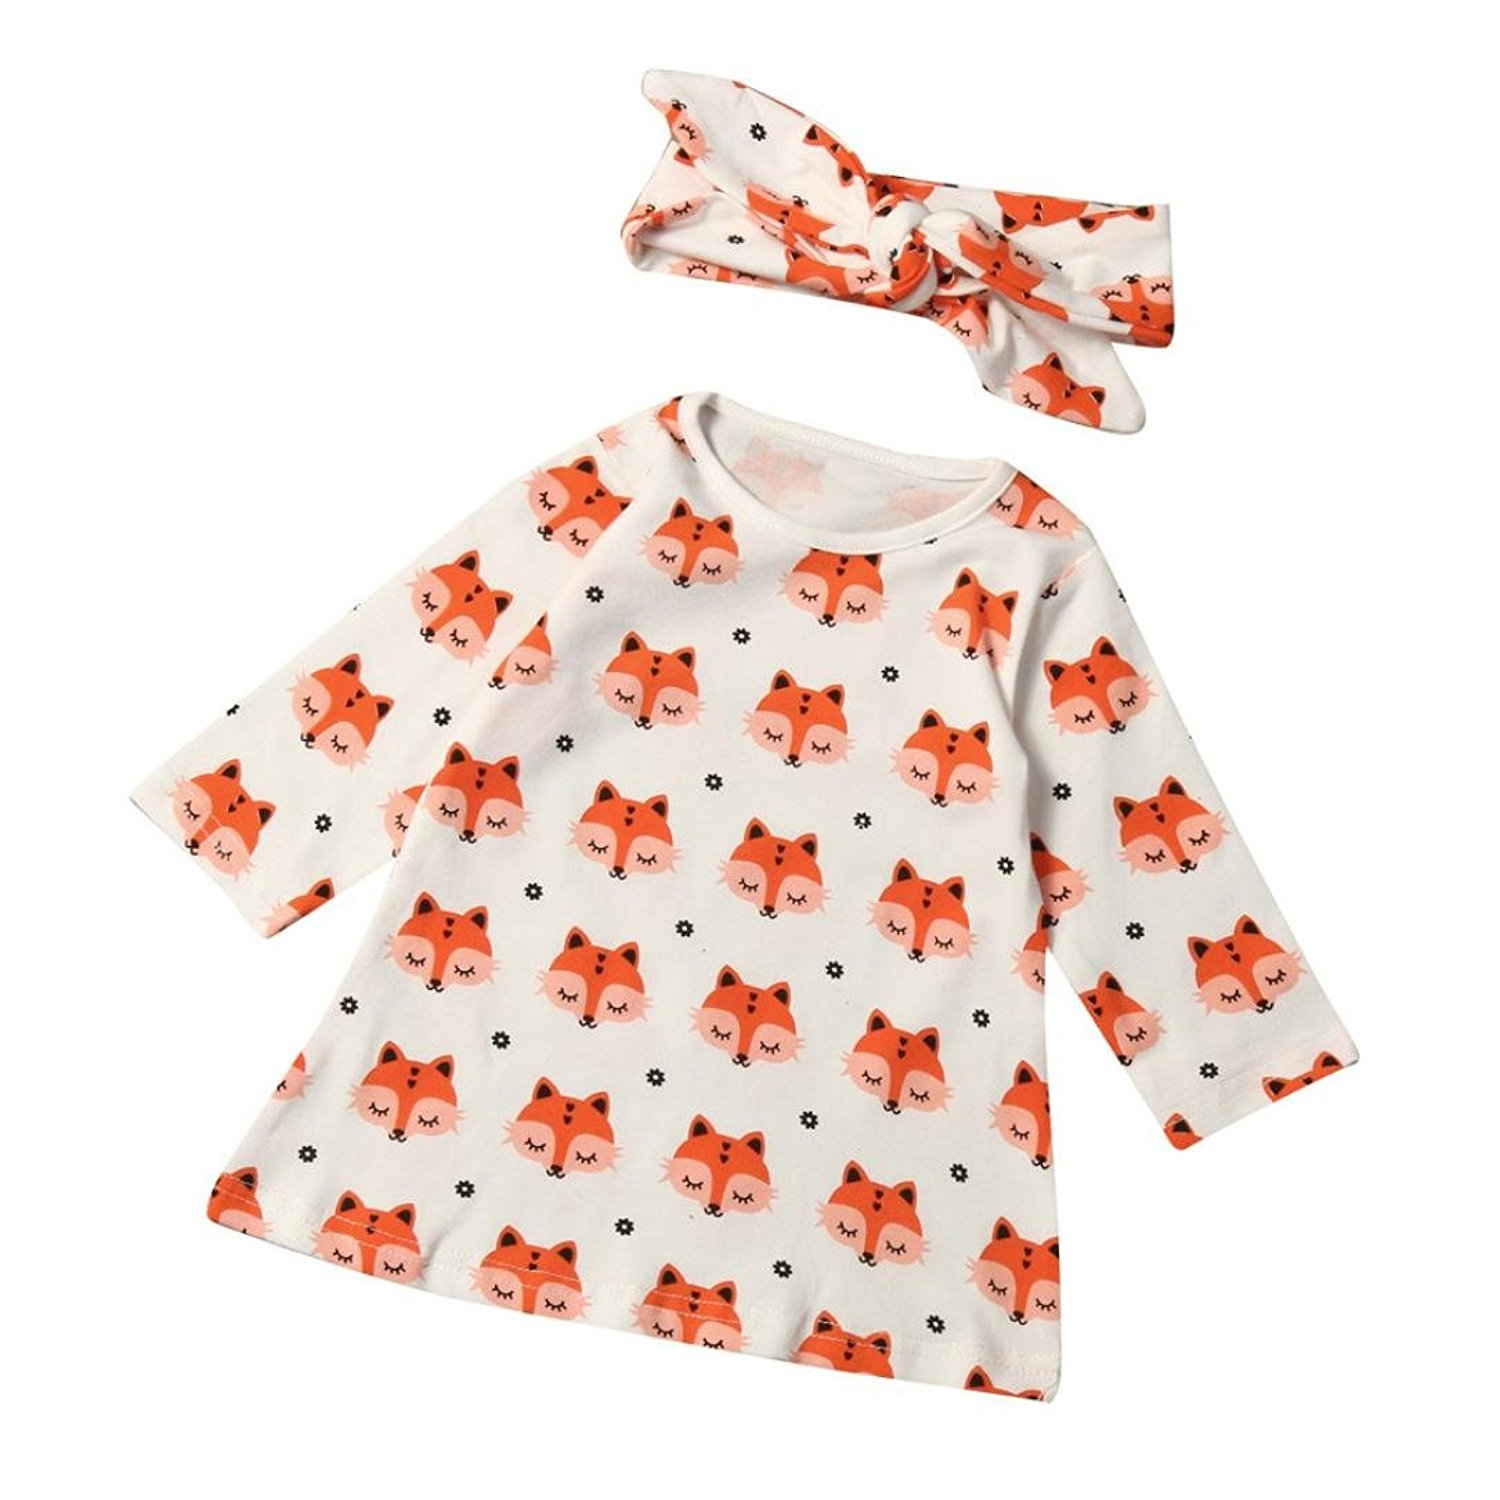 BZLine® Baby Dress, Lovely Occident Newborn Infant Baby Boys Girls Fox Print Blouse + Headband Outfits Clothes Set for Ages in Children BZL_01